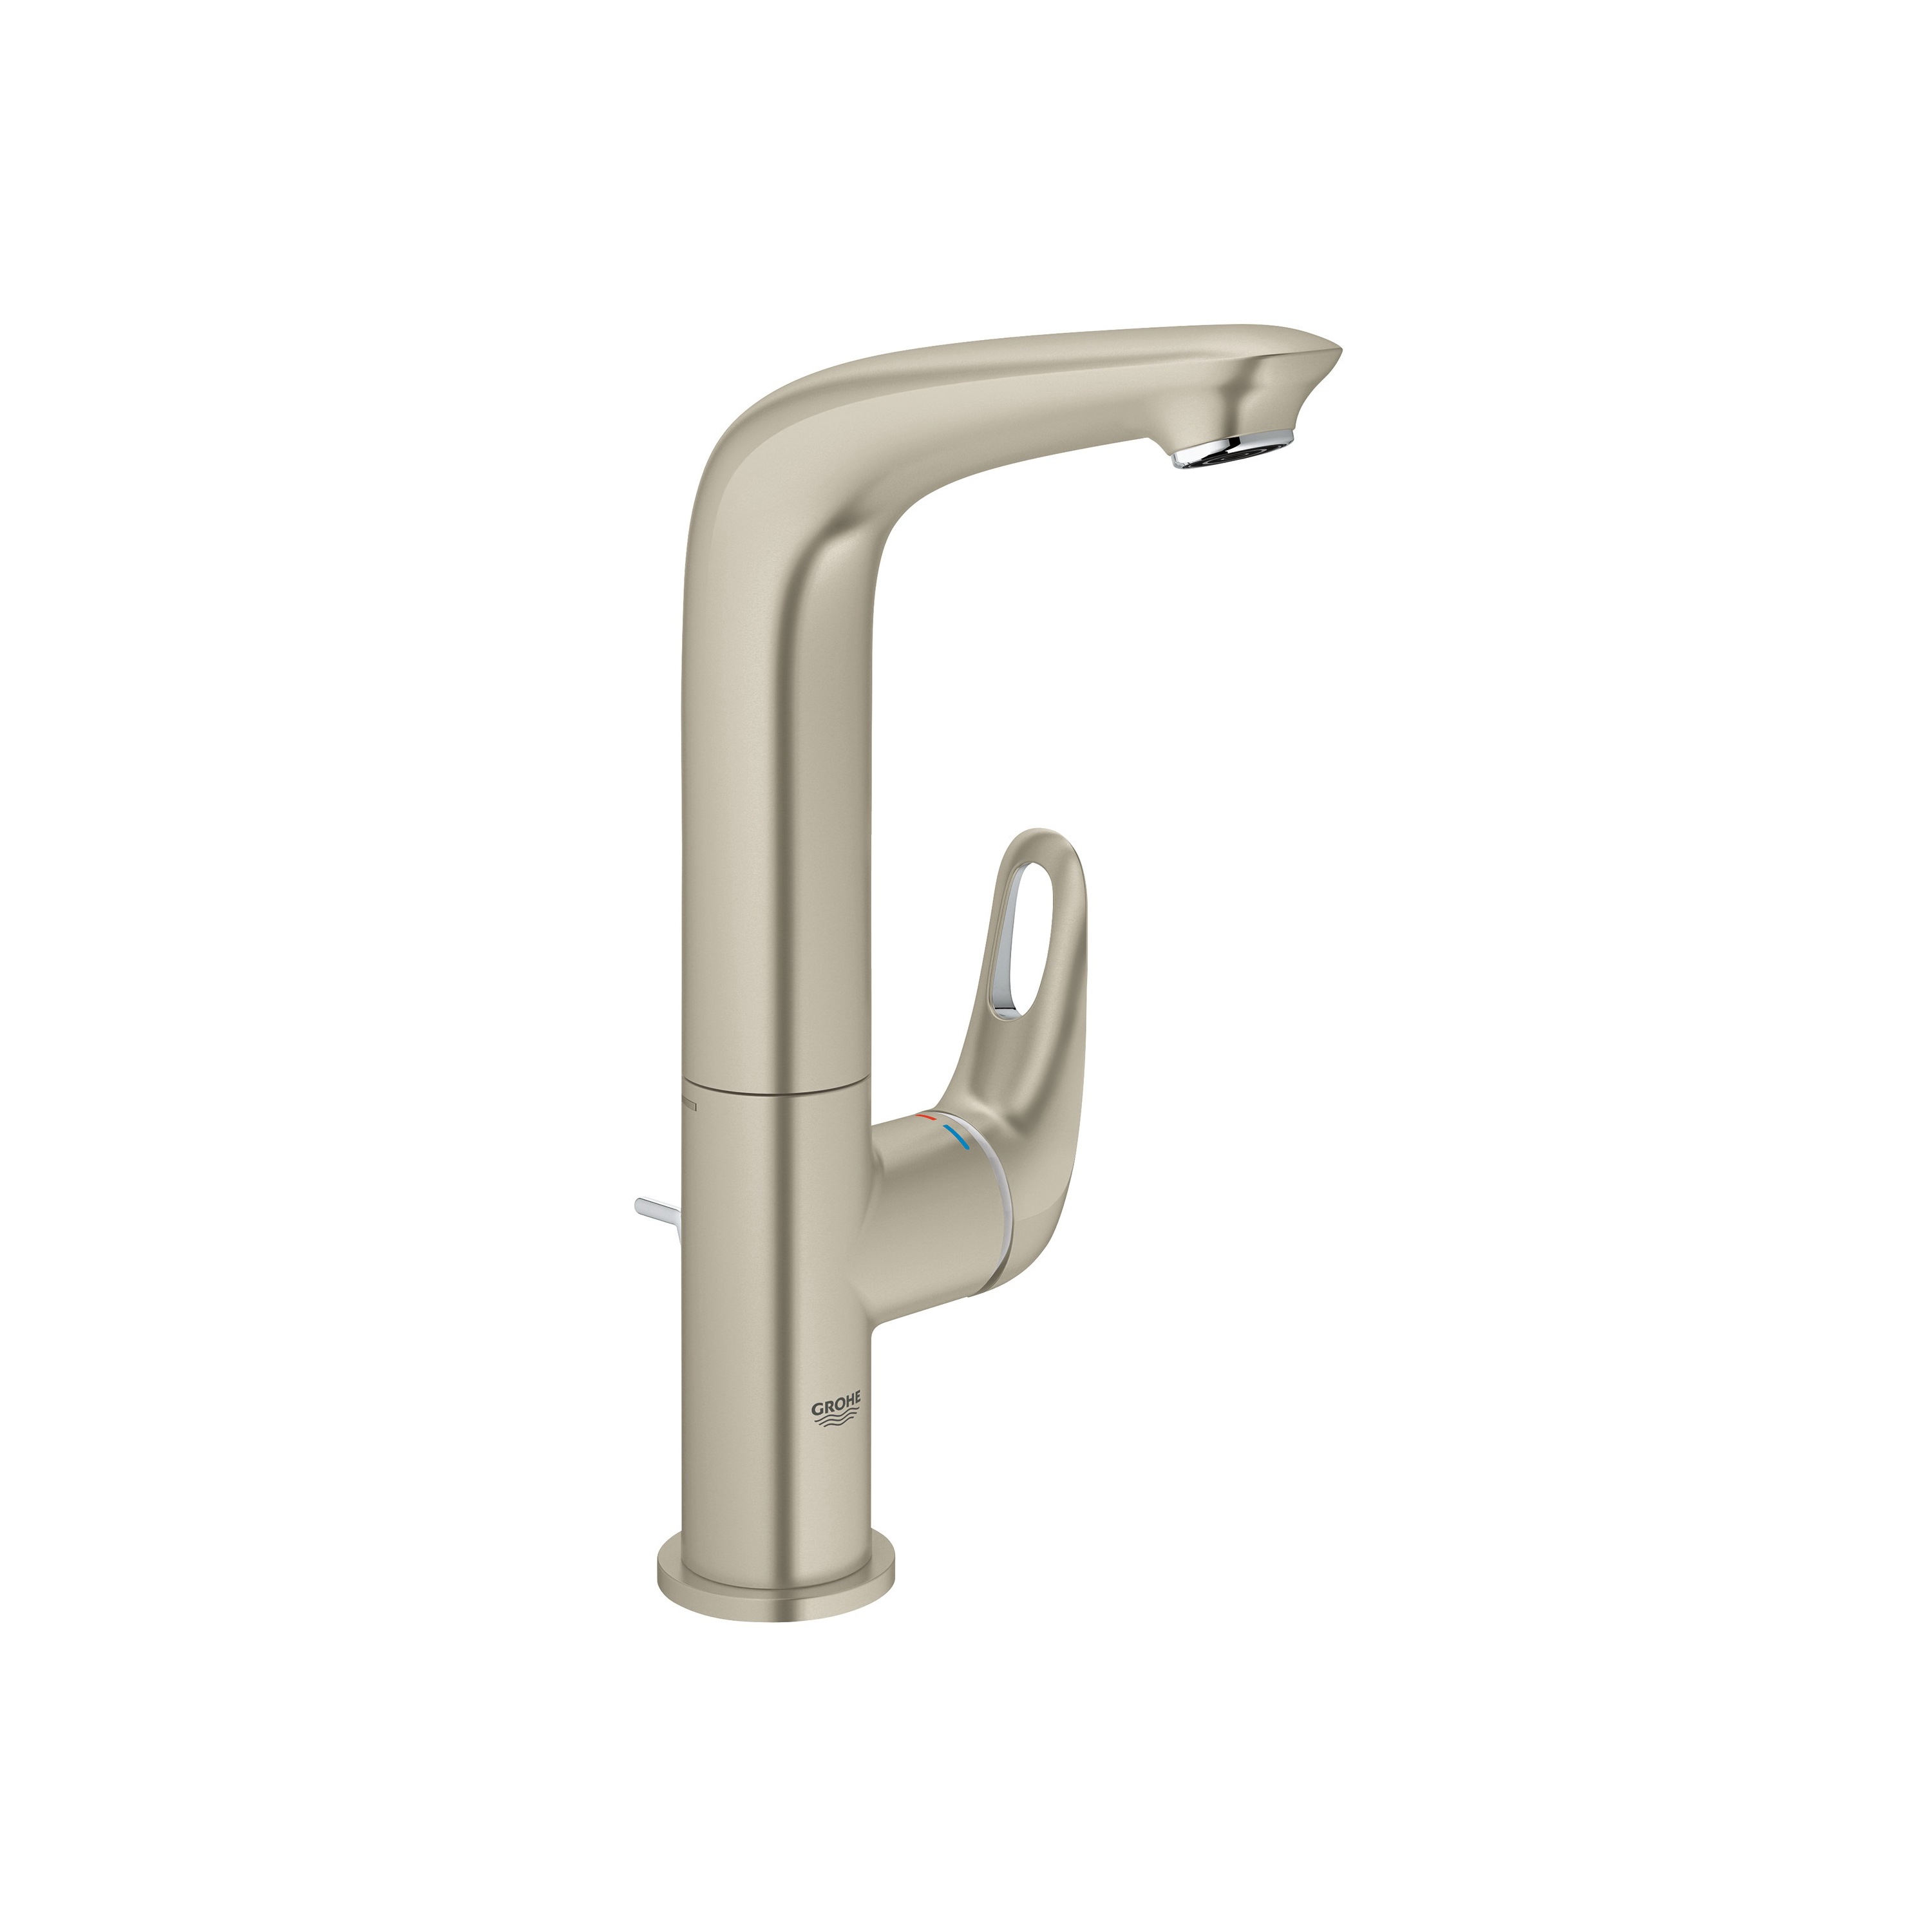 GROHE 23579EN3 Eurostyle™ Bathroom Basin Mixer With Temperature Limiter, 1.2 gpm, 9-5/8 in H Spout, 1 Handle, Pop-Up Drain, 1 Faucet Hole, Brushed Nickel, Import